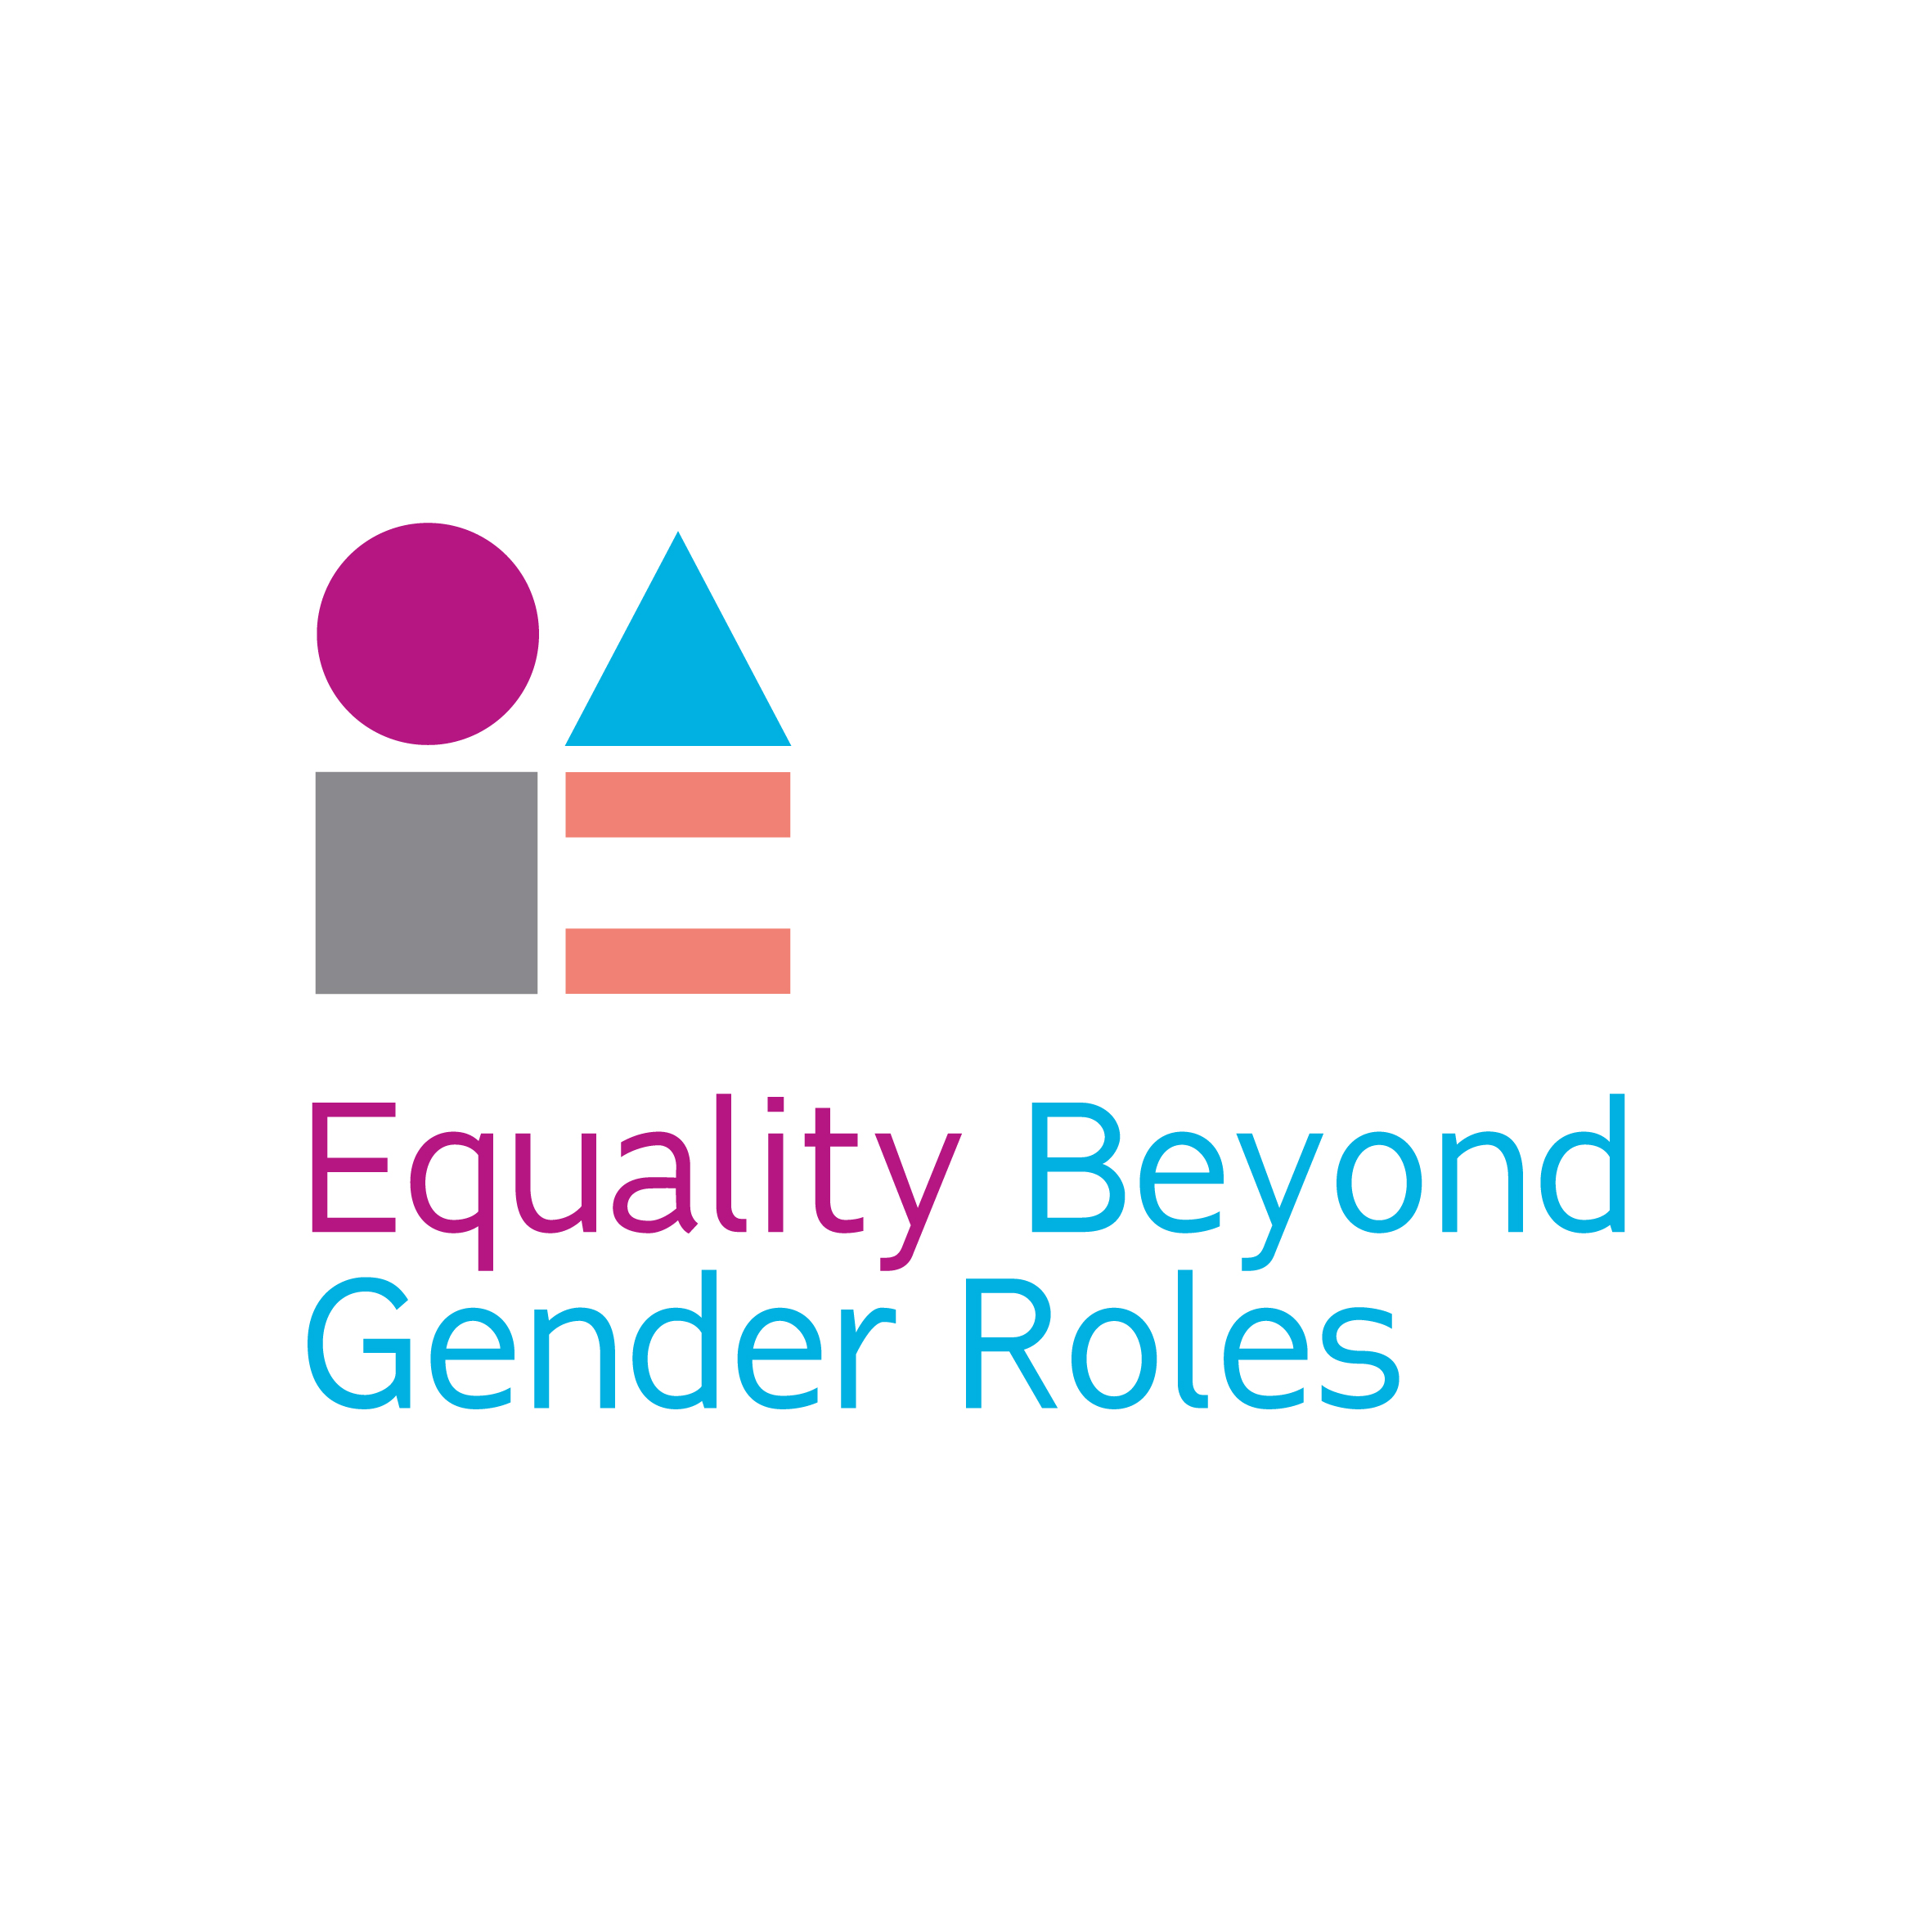 Equality Beyond Gender Roles